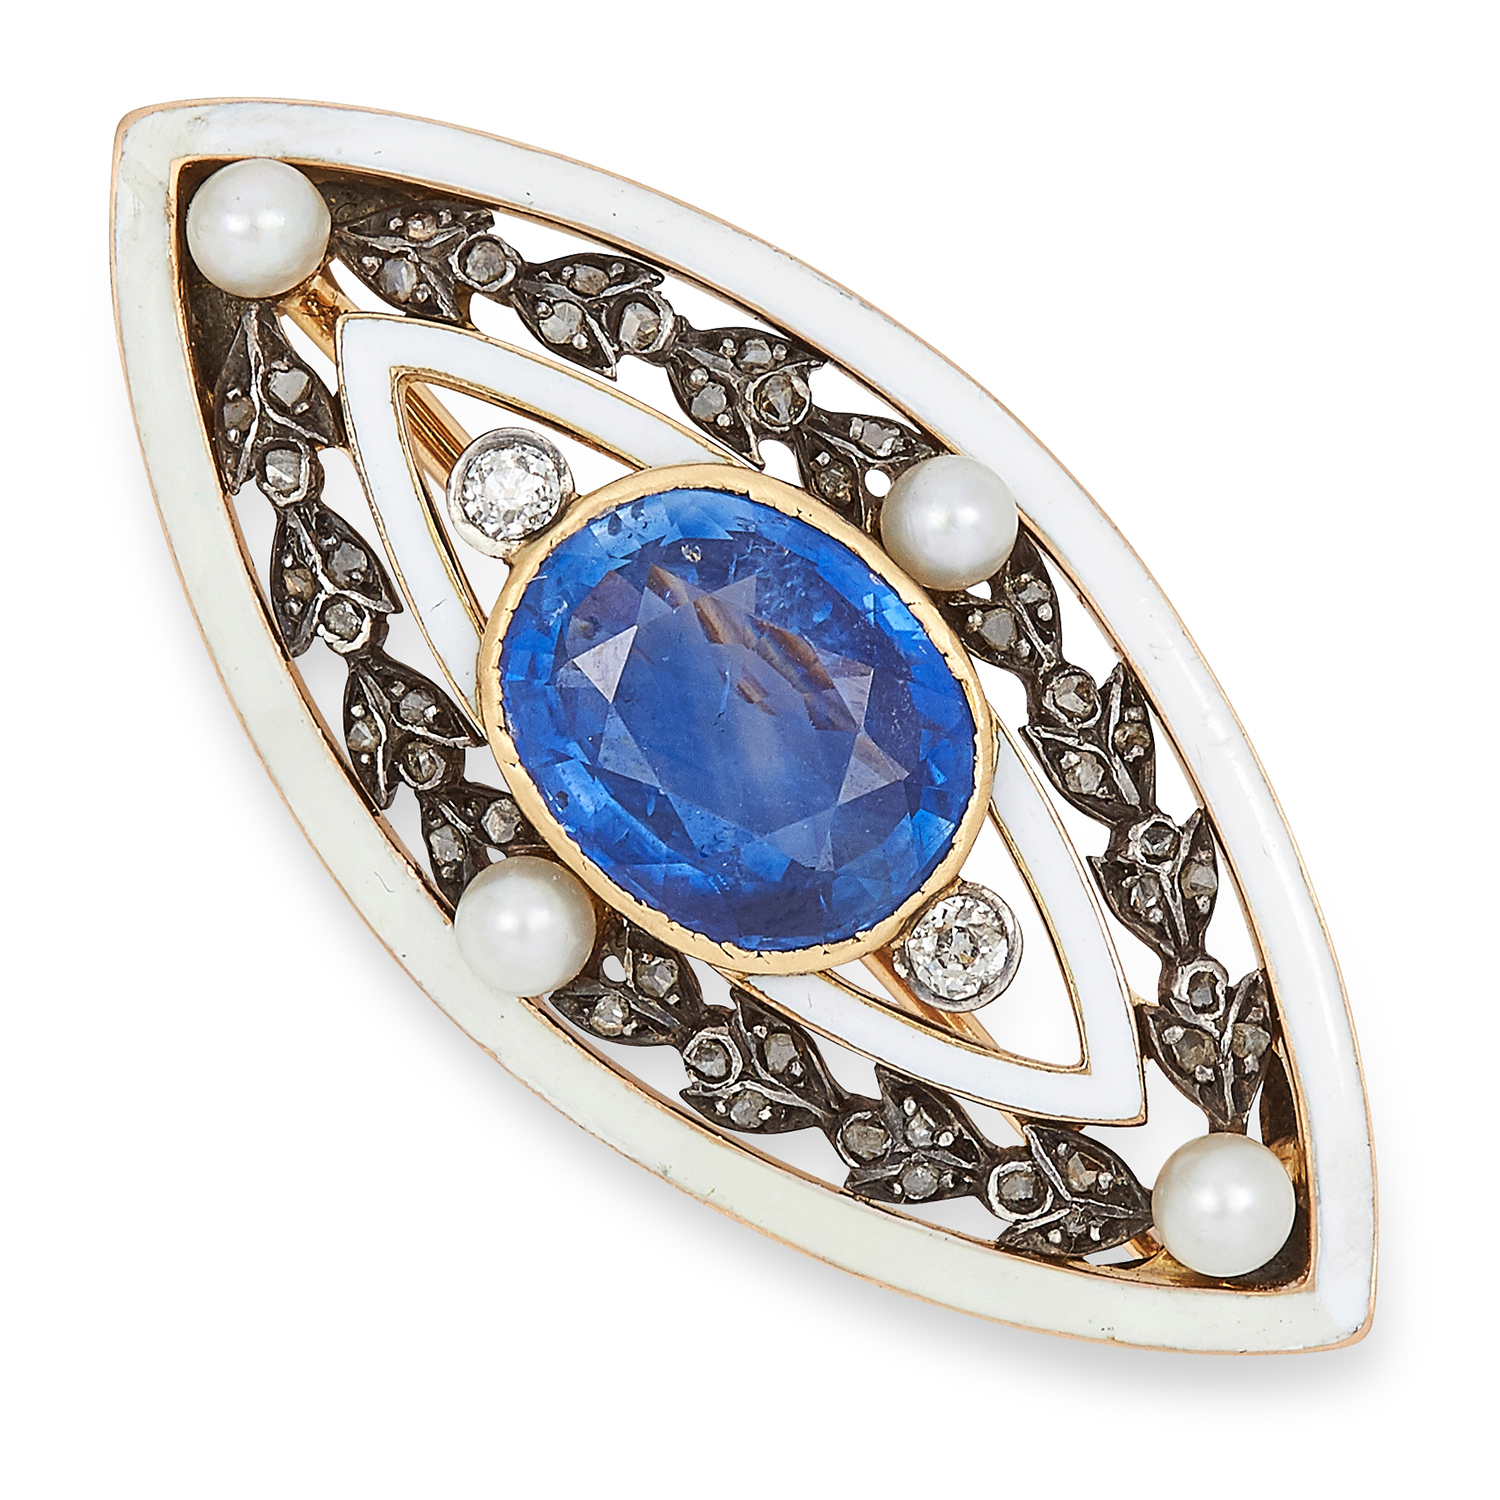 Los 12 - ANTIQUE SAPPHIRE, PEARL, DIAMOND AND ENAMEL BROOCH set with a cushion cut sapphire of